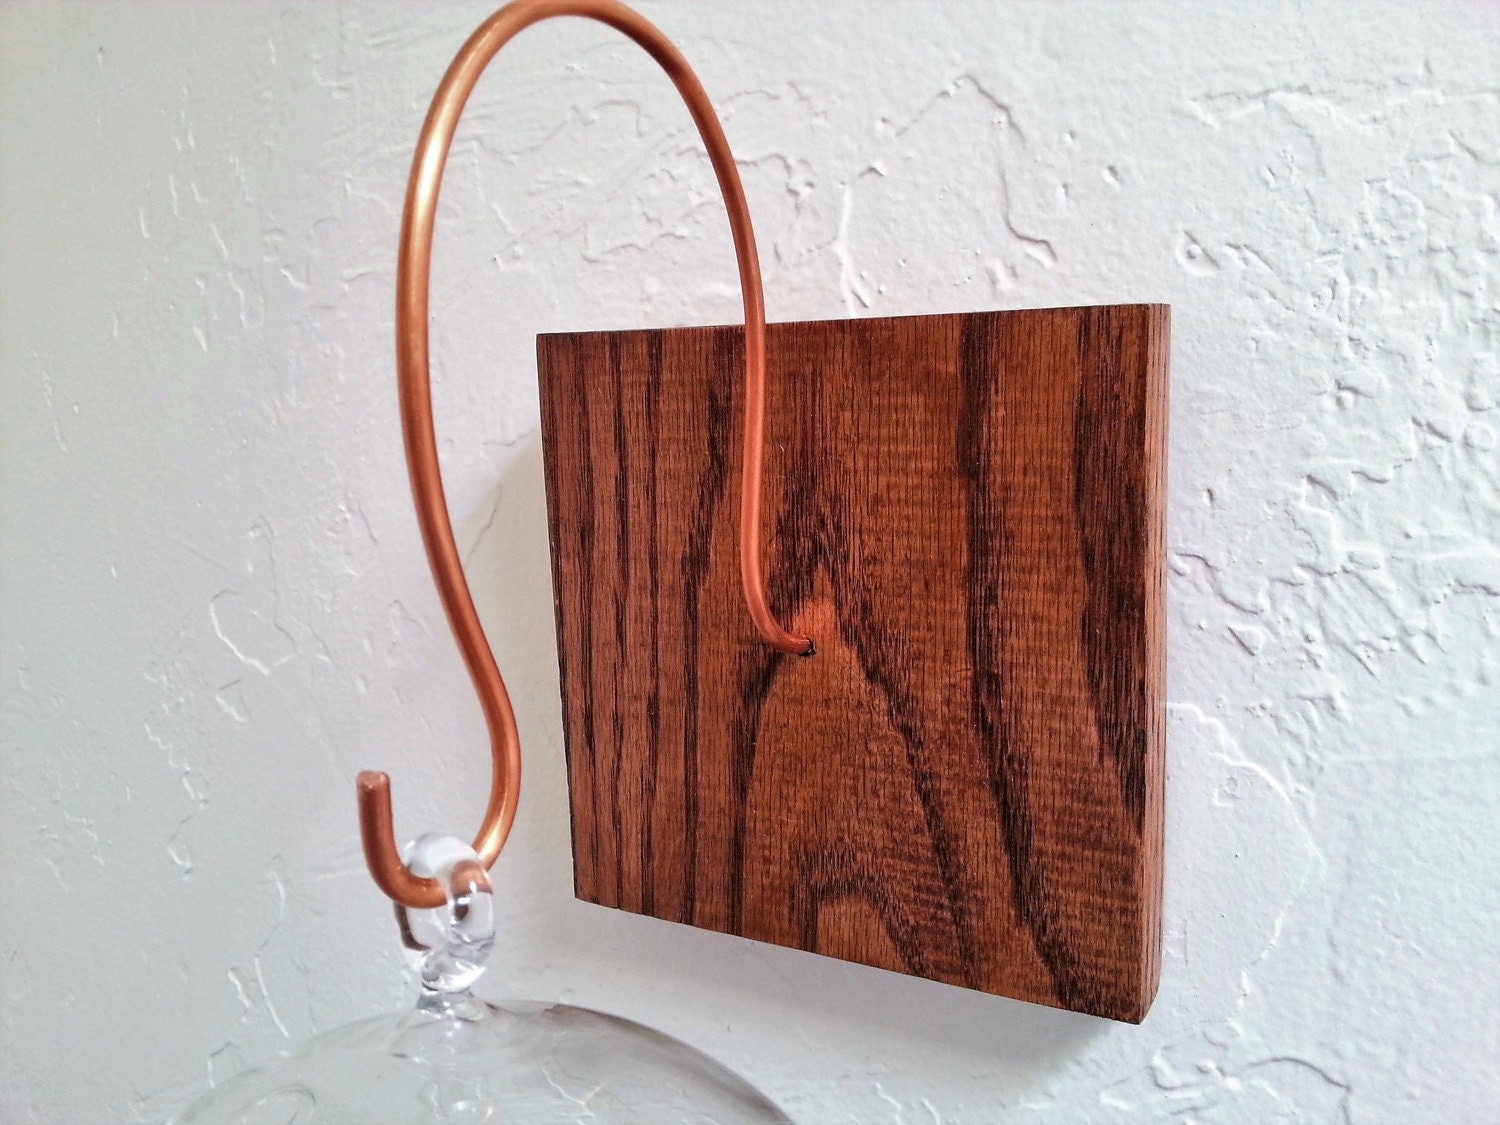 Wall mount for hanging terrarium handmade wood and copper for Air plant holder ideas